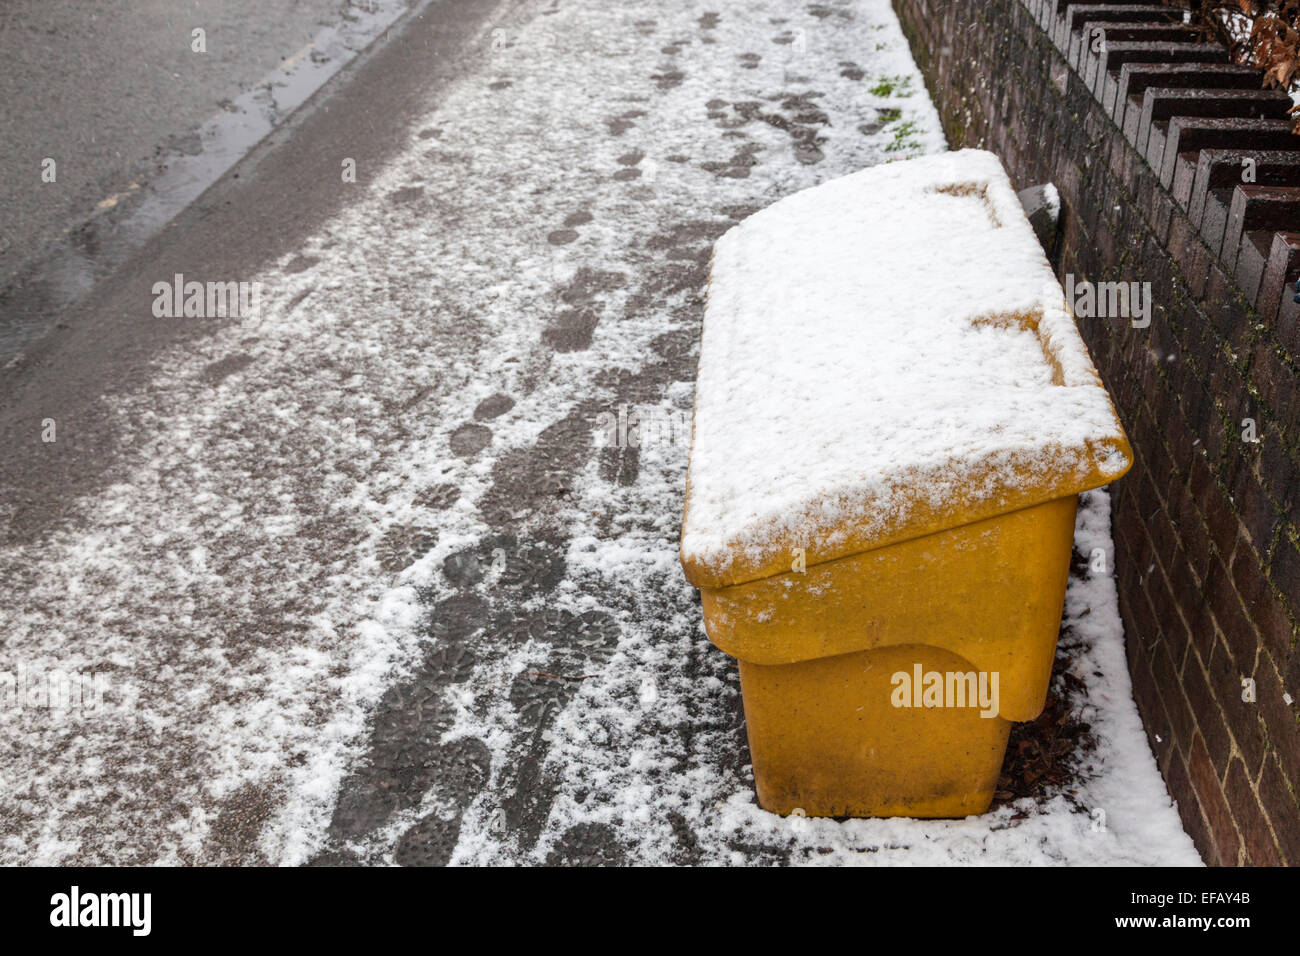 Roadside grit bin or box in snow, Nottinghamshire, England, UK - Stock Image